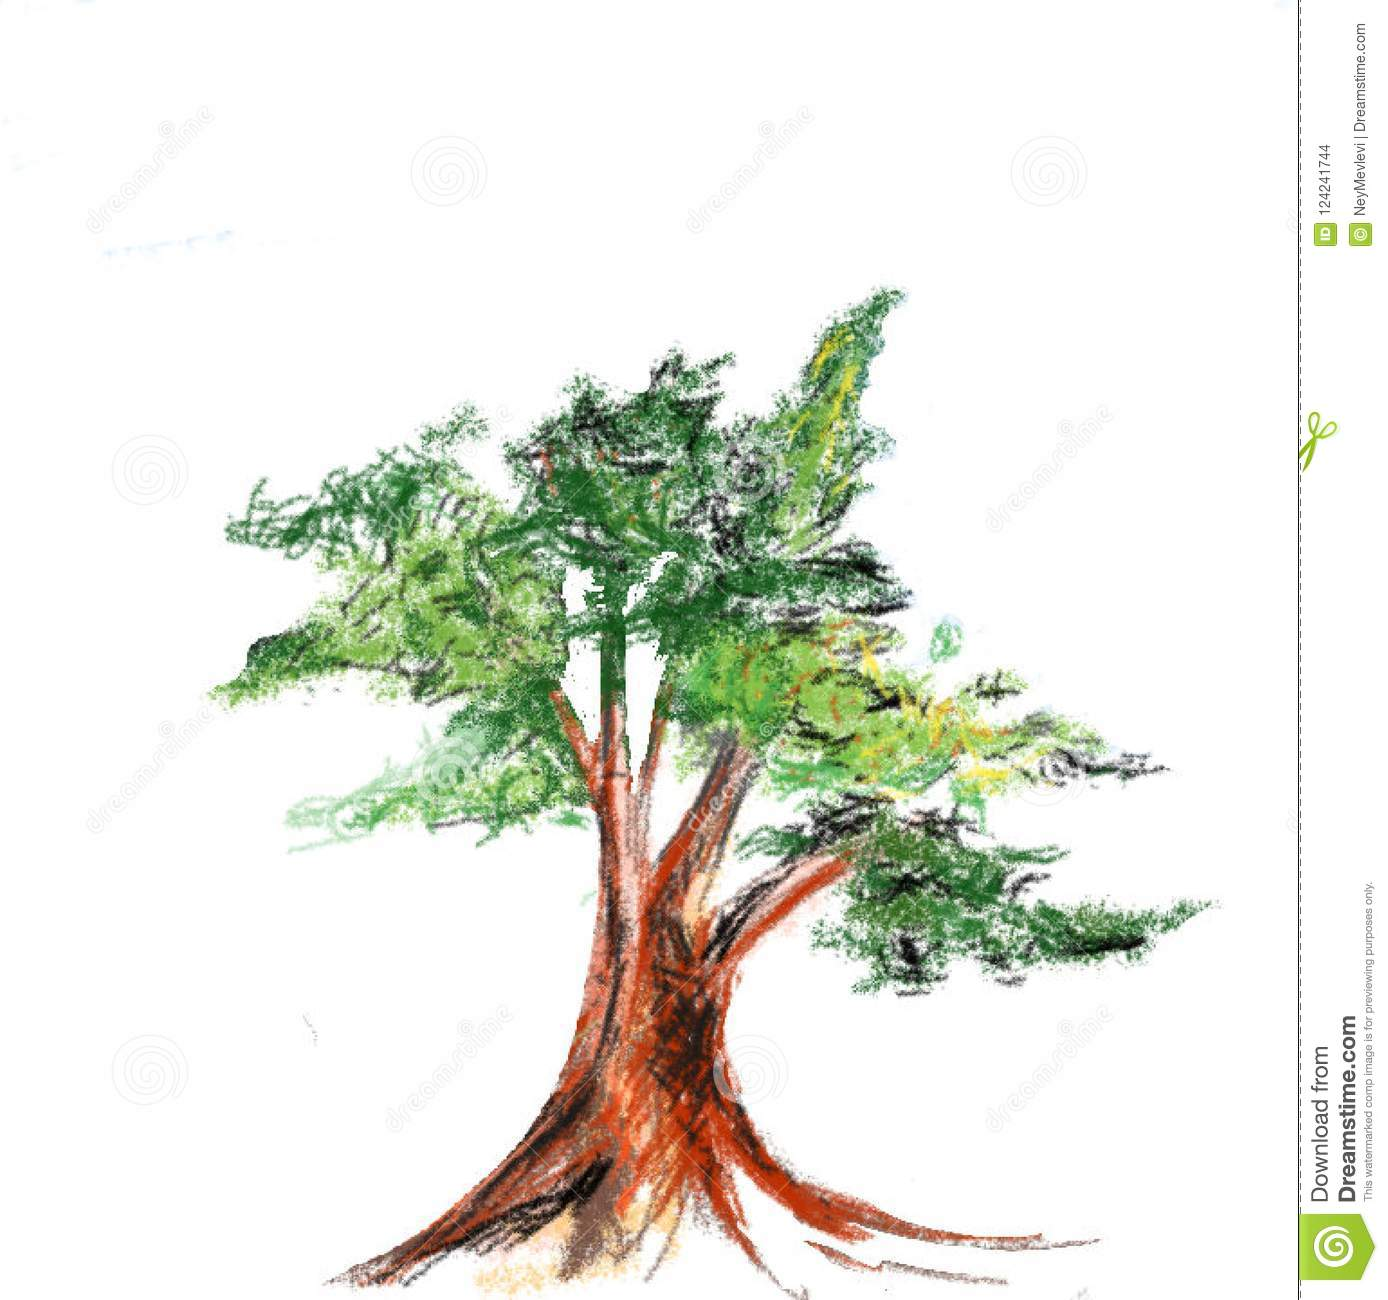 Pencil drawing of tree stock vector. Illustration of drawing - 124241744